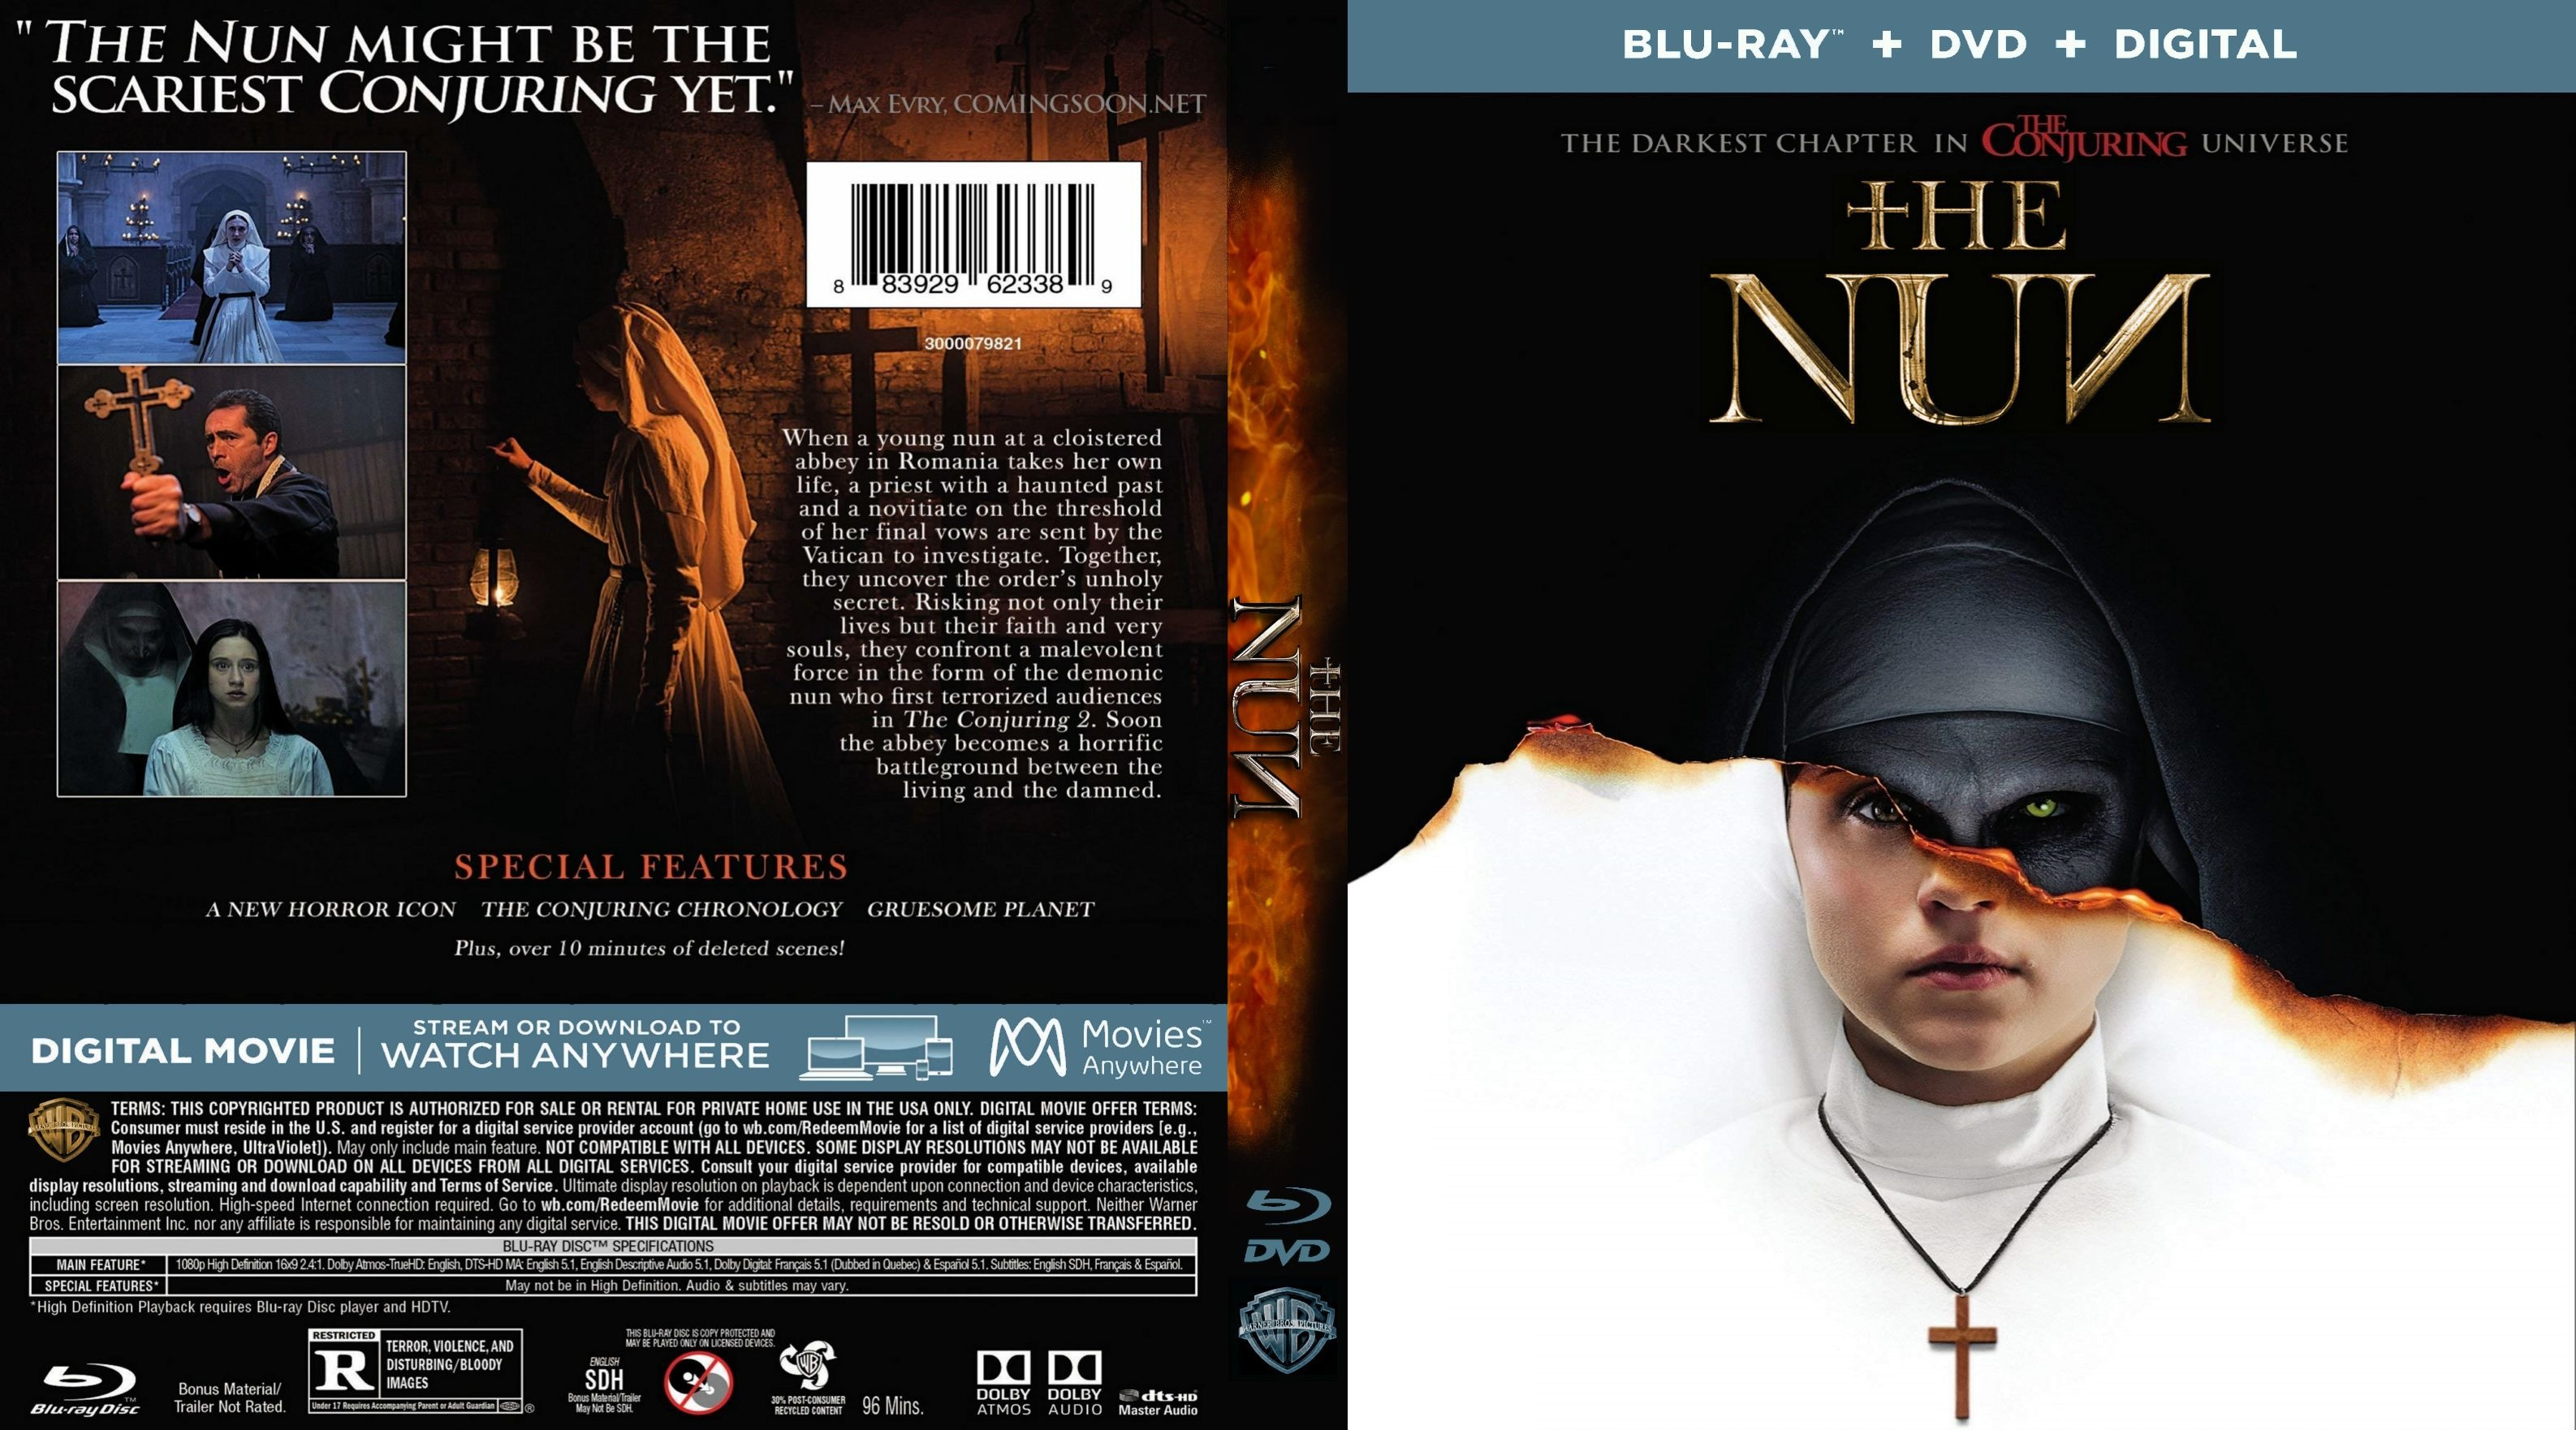 The Nun Bluray Cover - Cover Addict - Free Dvd, Bluray Covers And - Free Printable Blu Ray Covers